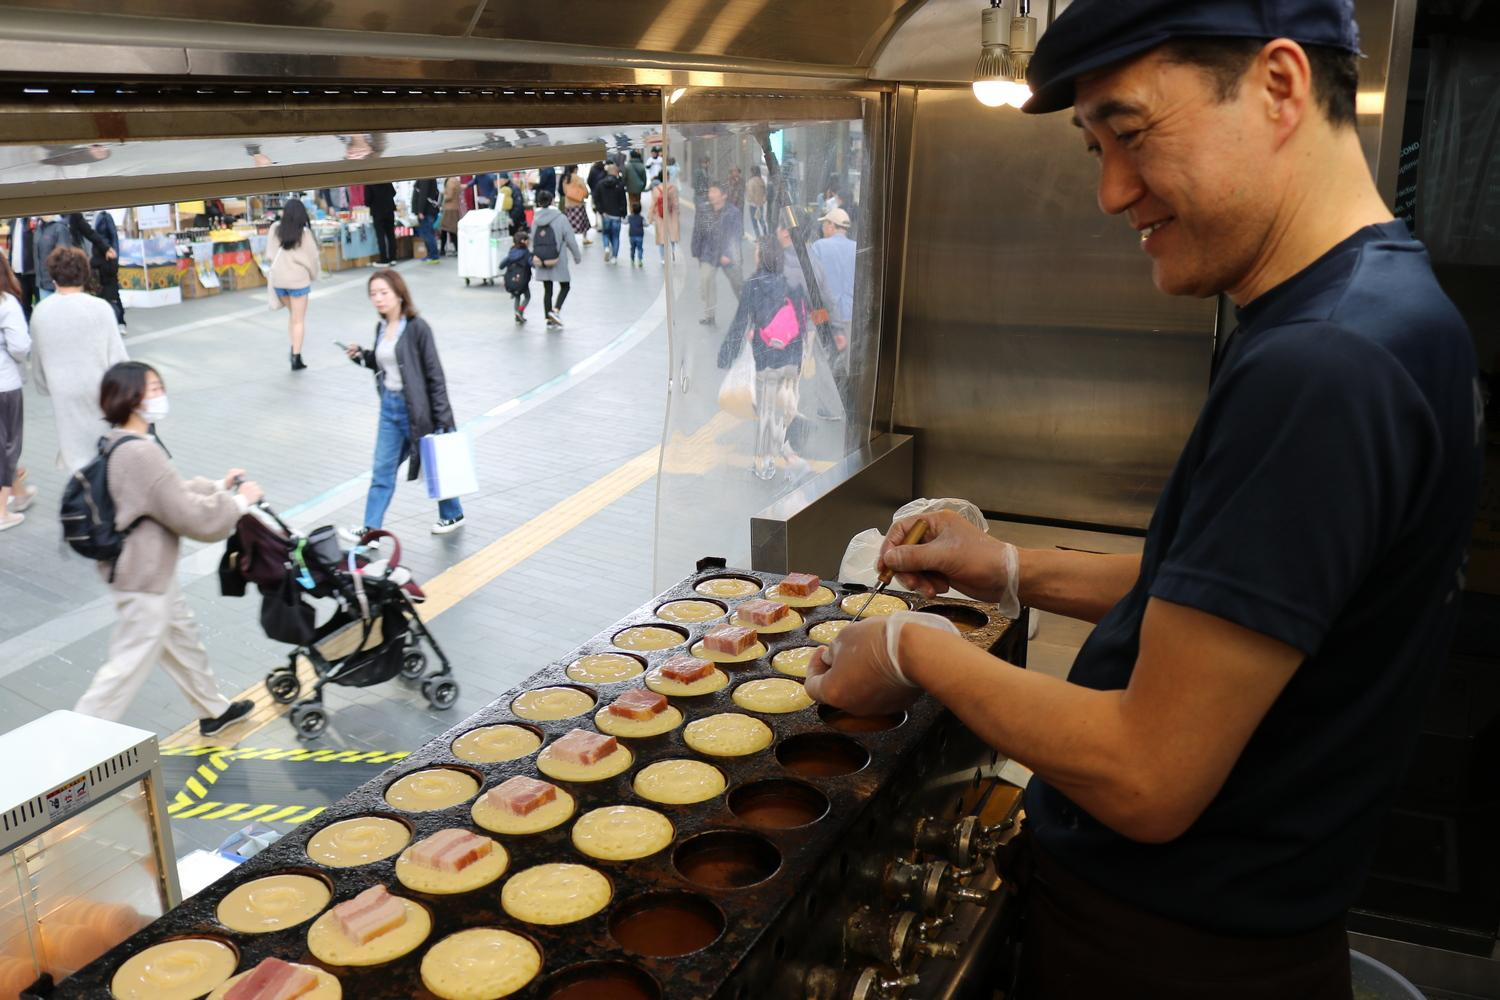 The folks from Yahaba filled the mall with the irresistible aroma of bacon-filled hotcakes, and soon had shoppers lining up around the food truck.